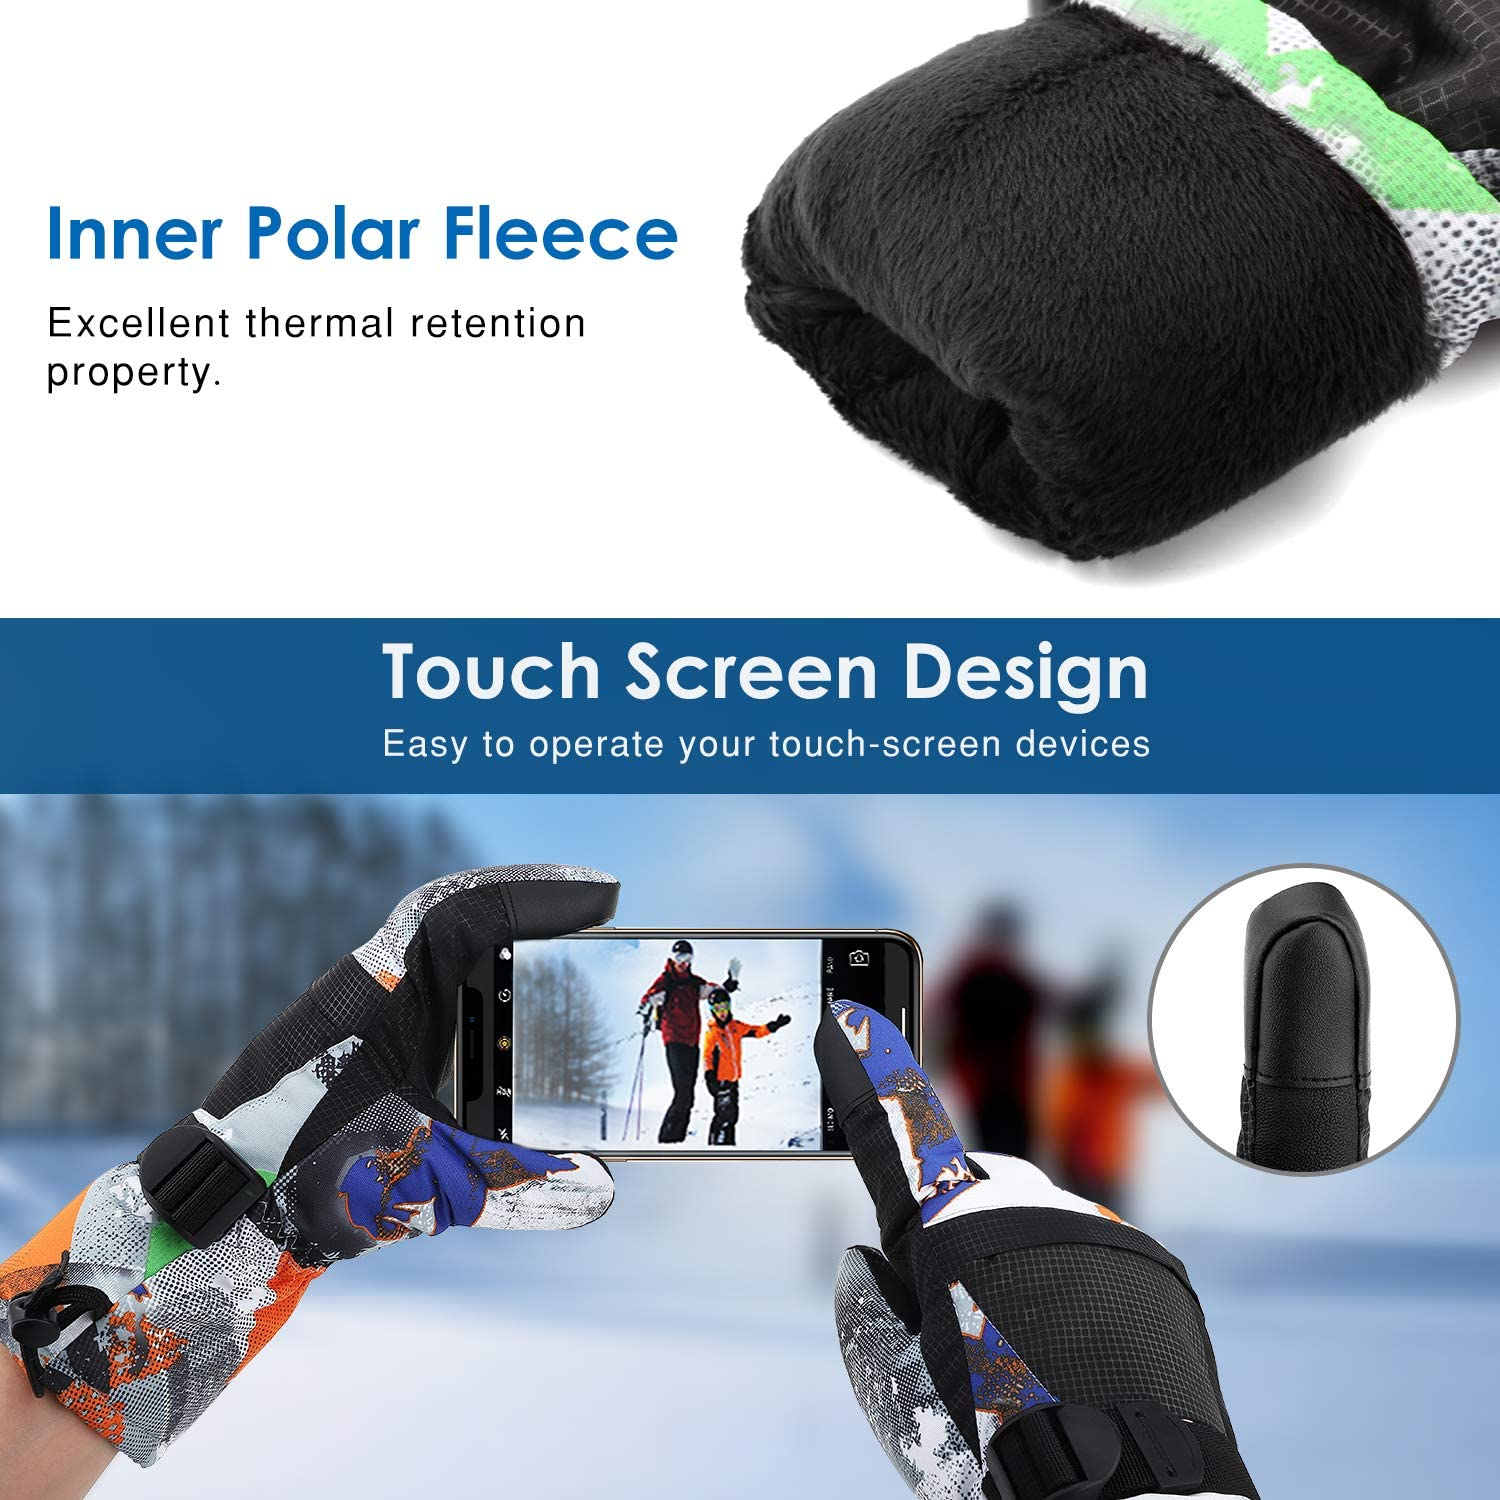 Snowboarding Outdoor Activities for Men Women Kids Skating Rhino Valley Ski Gloves Winter Windproof Thermal Warm Insulated Snow Telefingers Gloves with Zipper Pocket Fit Motorcycle Skiing